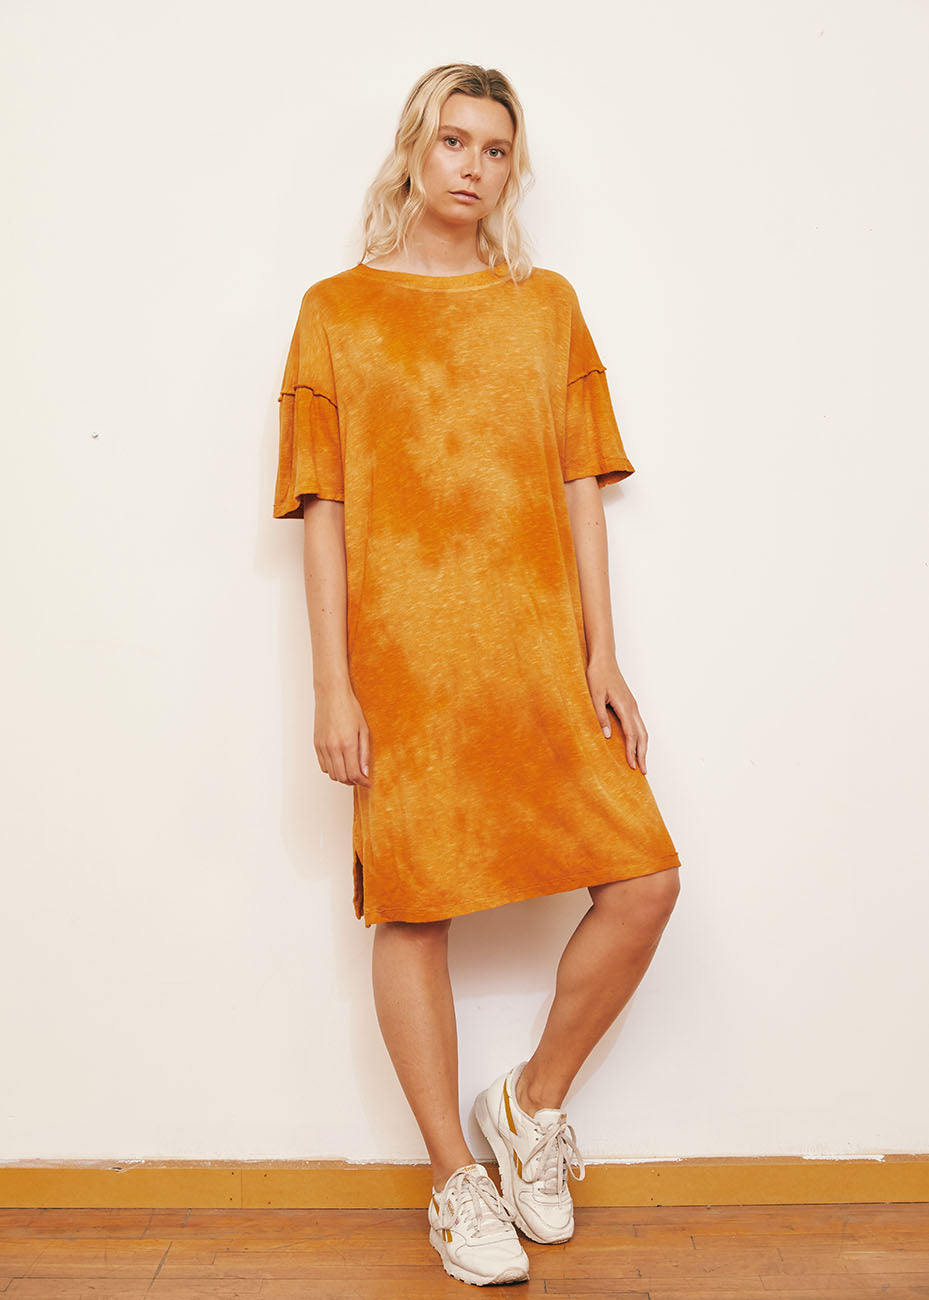 Golden Oversized Tie Dye Recycled Cotton Dress